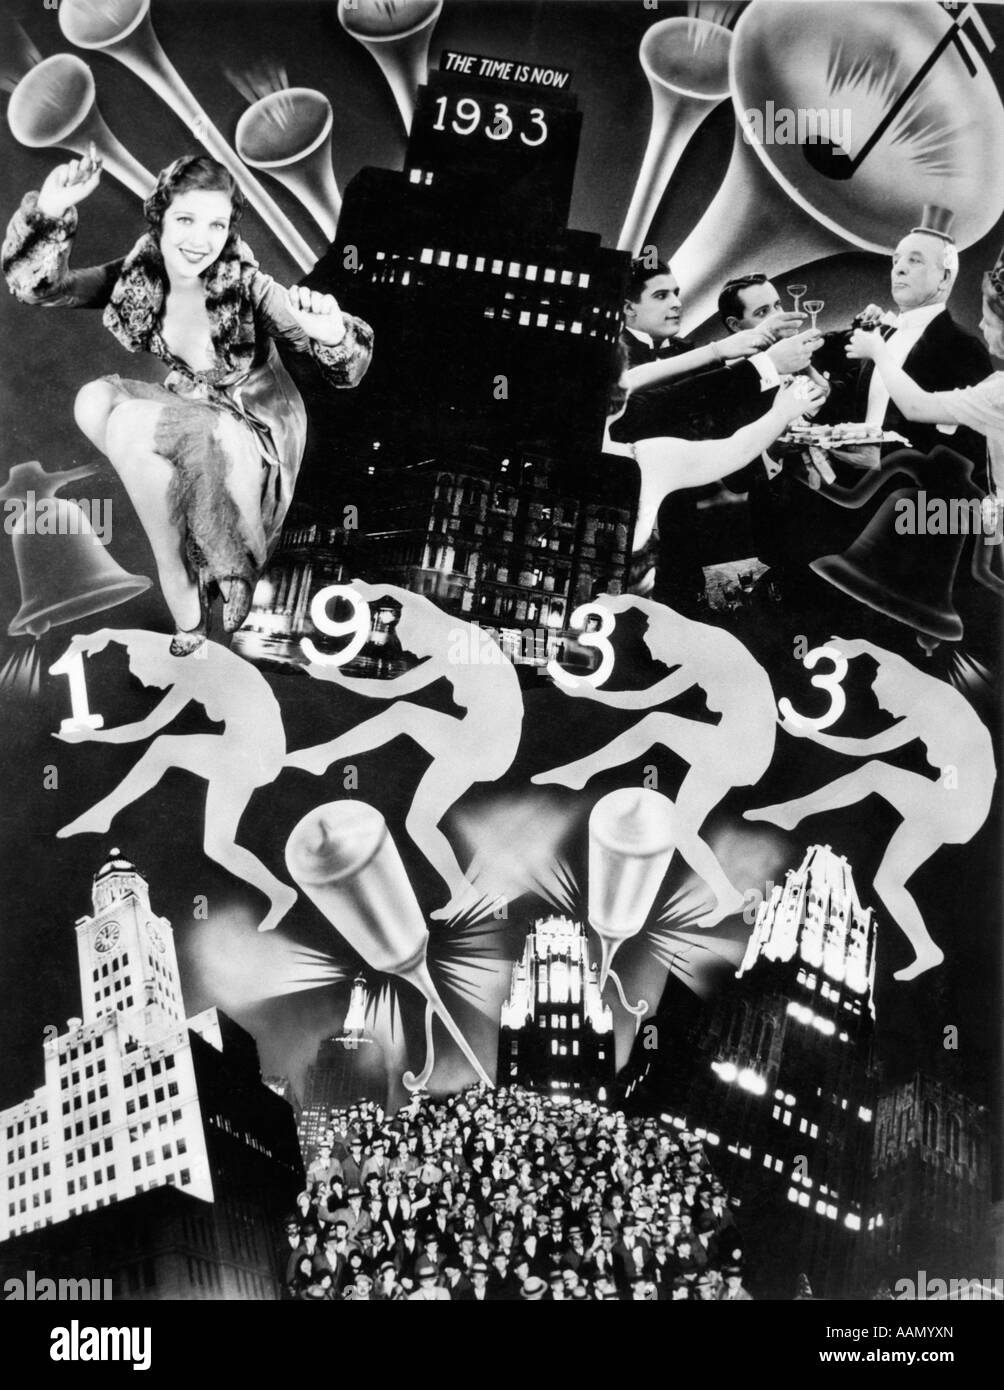 1930s MONTAGE OF HAPPY NEW YEAR 1933 DEPRESSION ART DECO COLLAGE - Stock Image